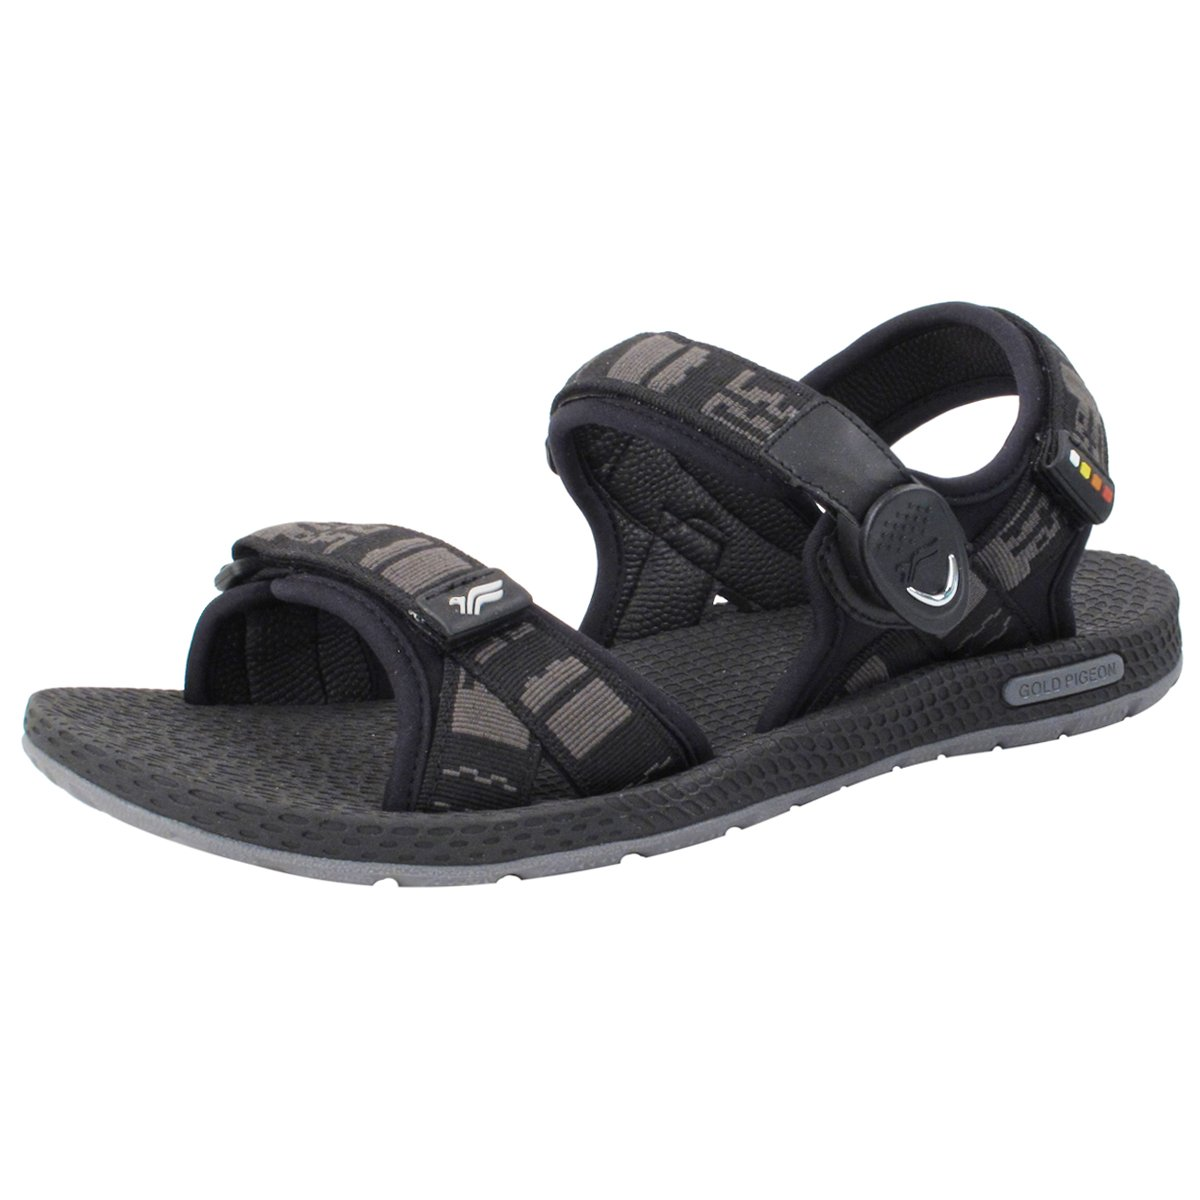 Gold Pigeon Shoes GP5931 Light Weight Adjustable Outdoor Water Sling Back Sandals for Men & Women B0796MQ4GC EU44: Men 11/11.5 (292.4mm)|8658 Black With Snap Lock